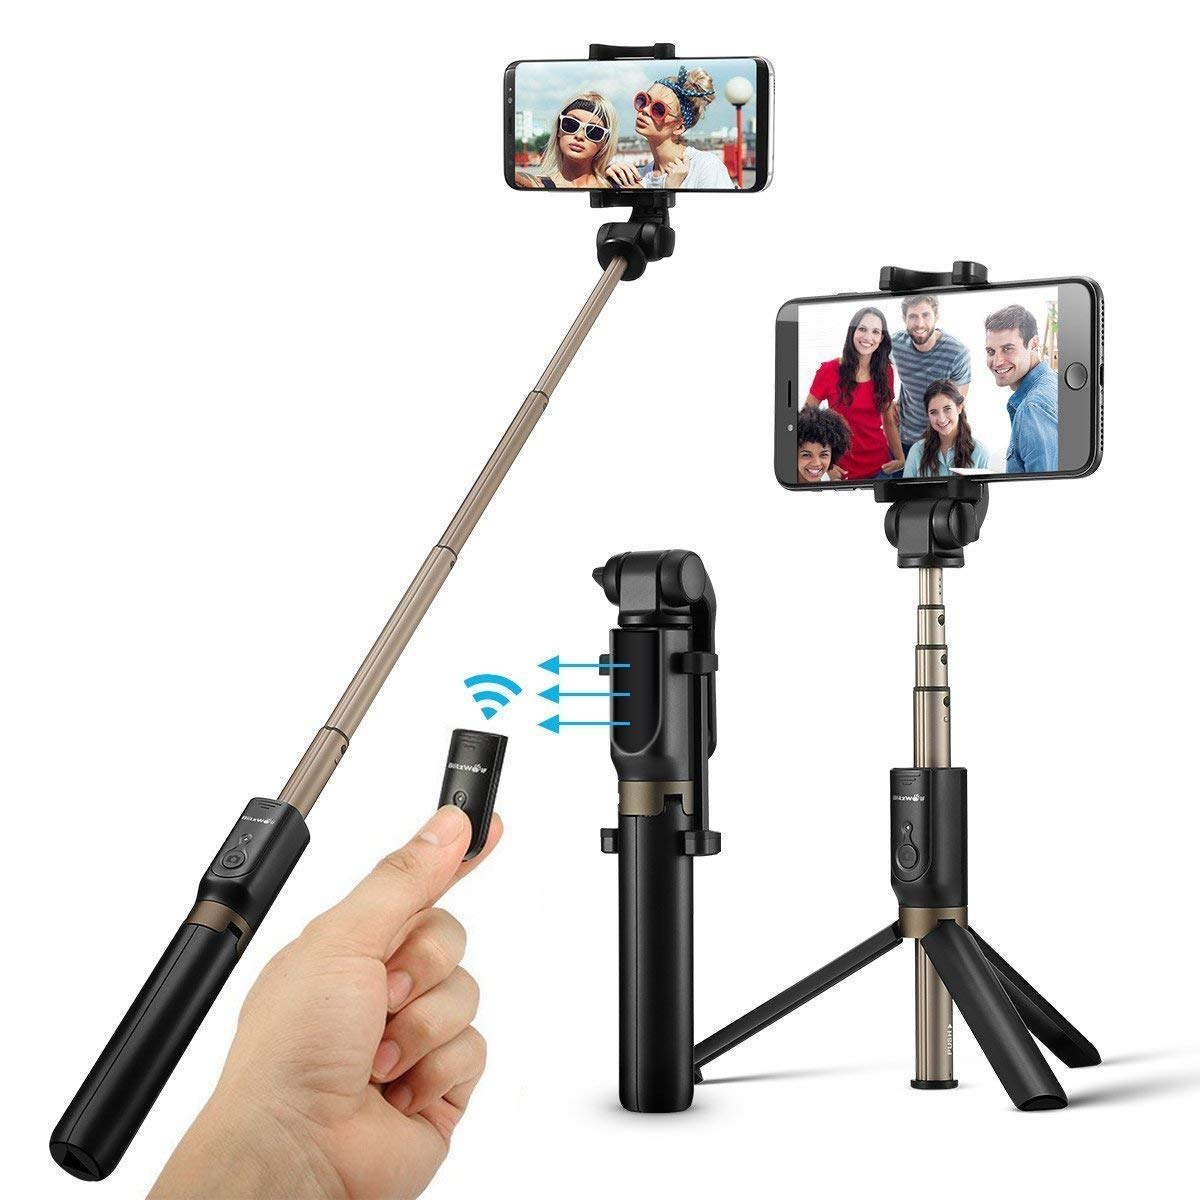 Selfie Stick Bluetooth, BlitzWolf Extendable Selfie Stick Tripod with Wireless Remote for iPhone Xs MAX/XR/XS/X/iPhone 8/8 Plus/iPhone 7/7 Plus/iPhone 6 Plus, Galaxy S9/S9 Plus/S8/S8 Plus/S7, More